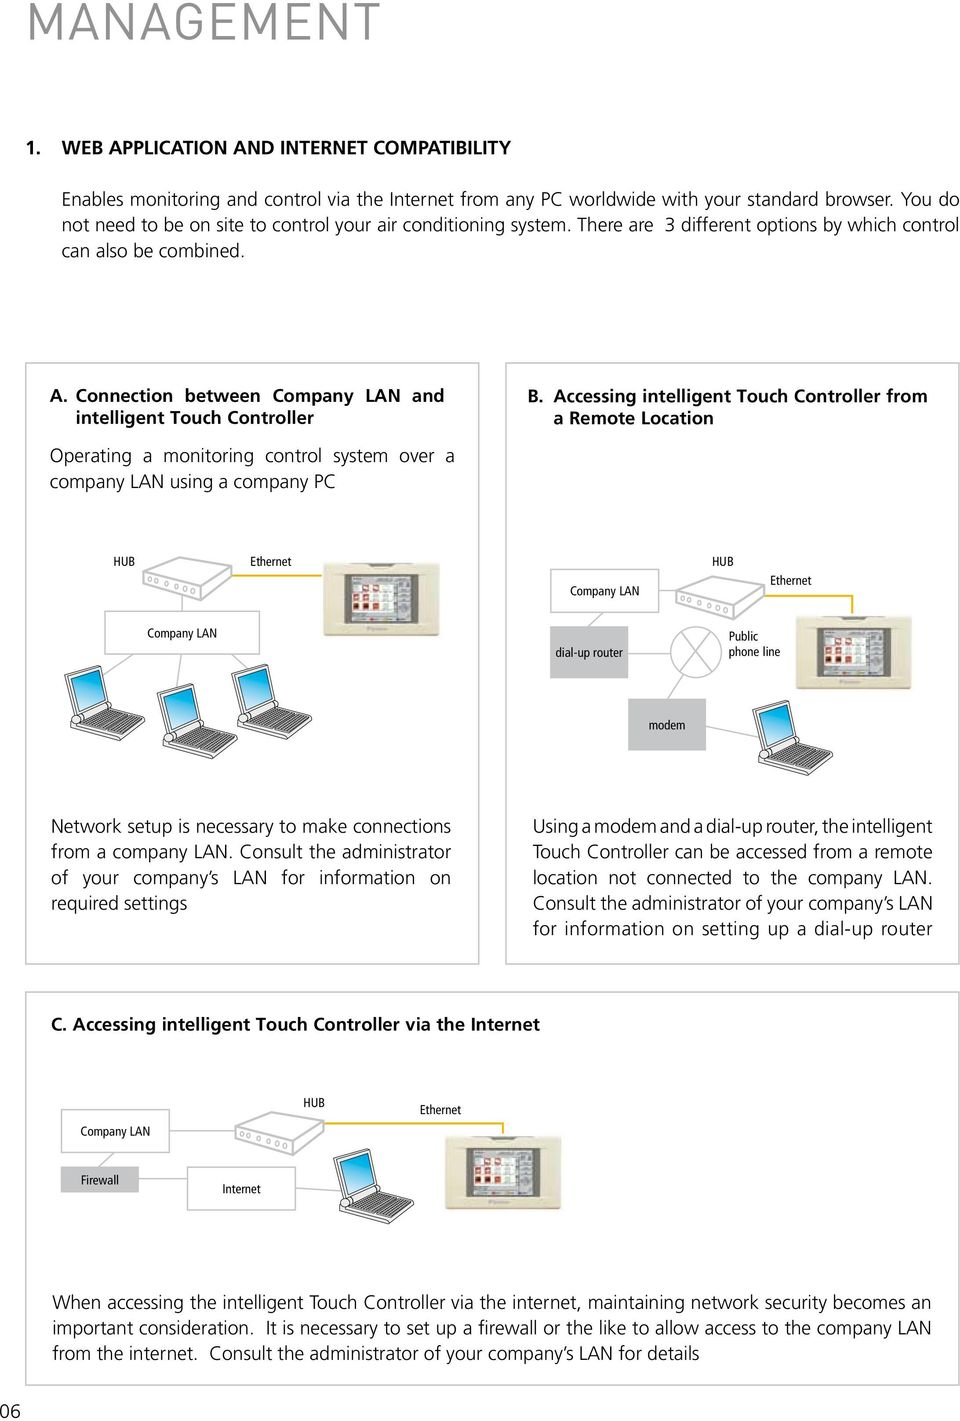 Connection between Company LAN and intelligent Touch Controller B.